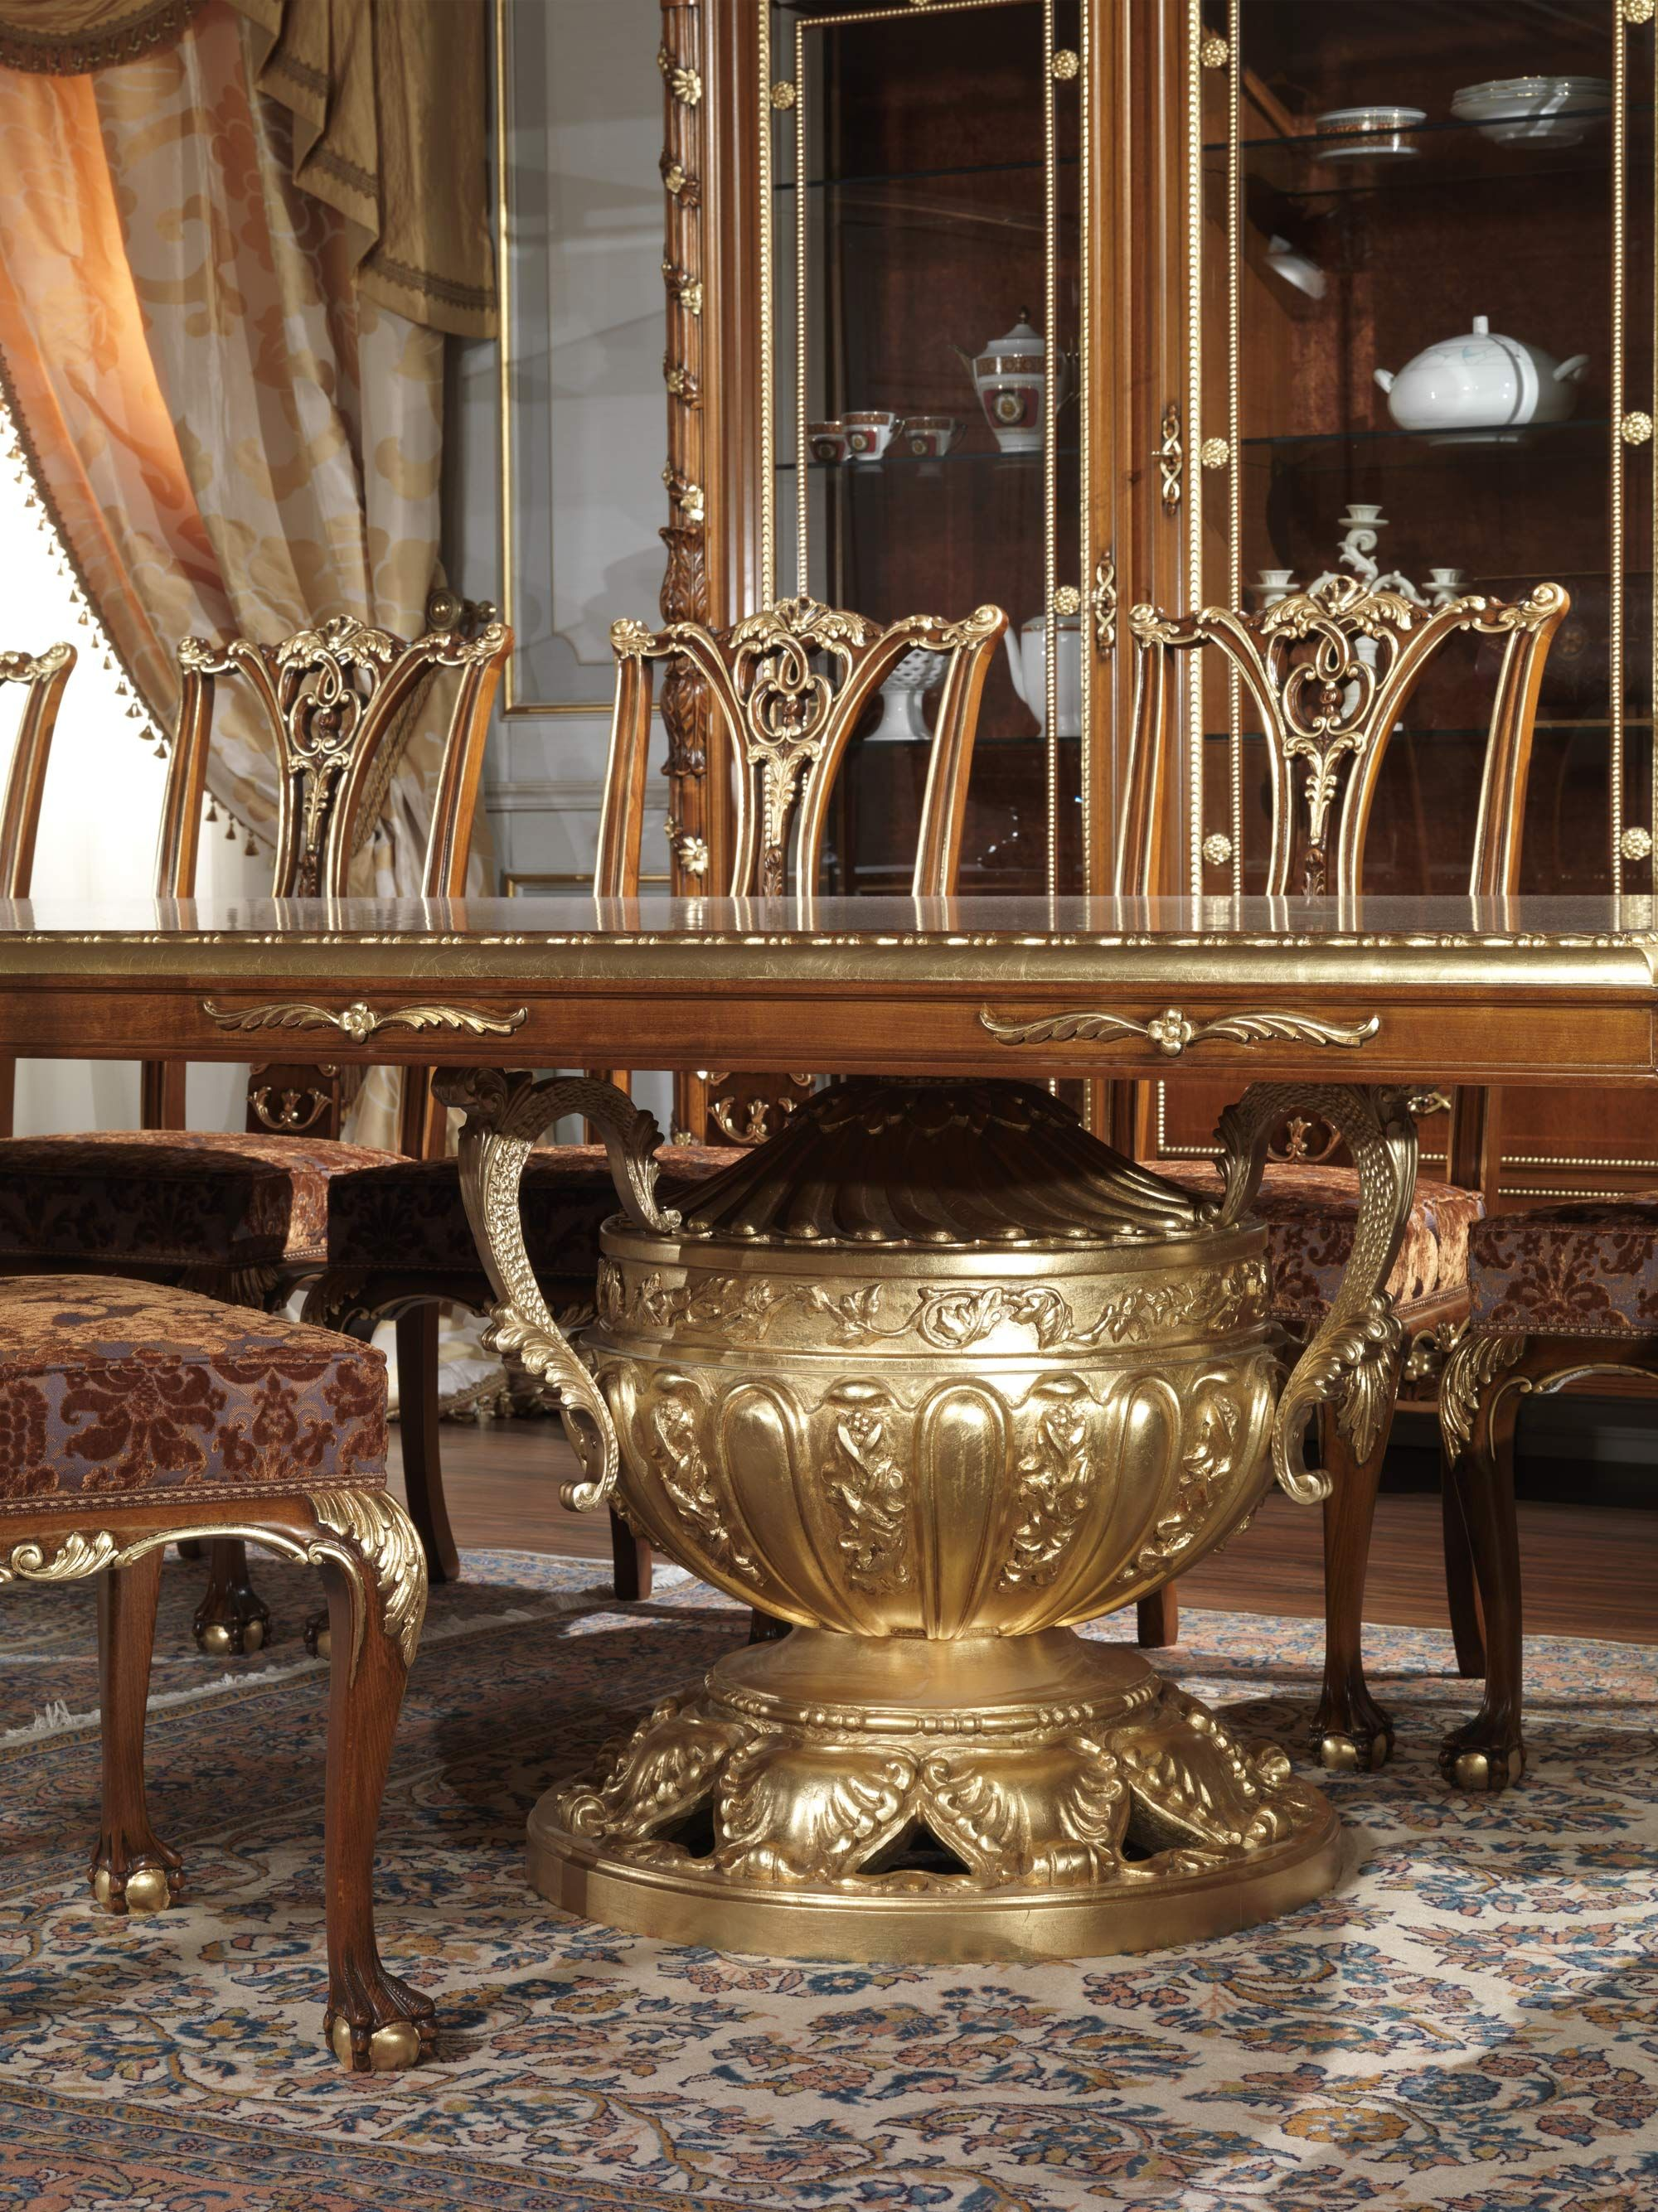 Classic Dining Rooms In Style Louis XV XVI Maggiolini And 800 French With Carvings Inlaid Gildings Entirely Made Italy